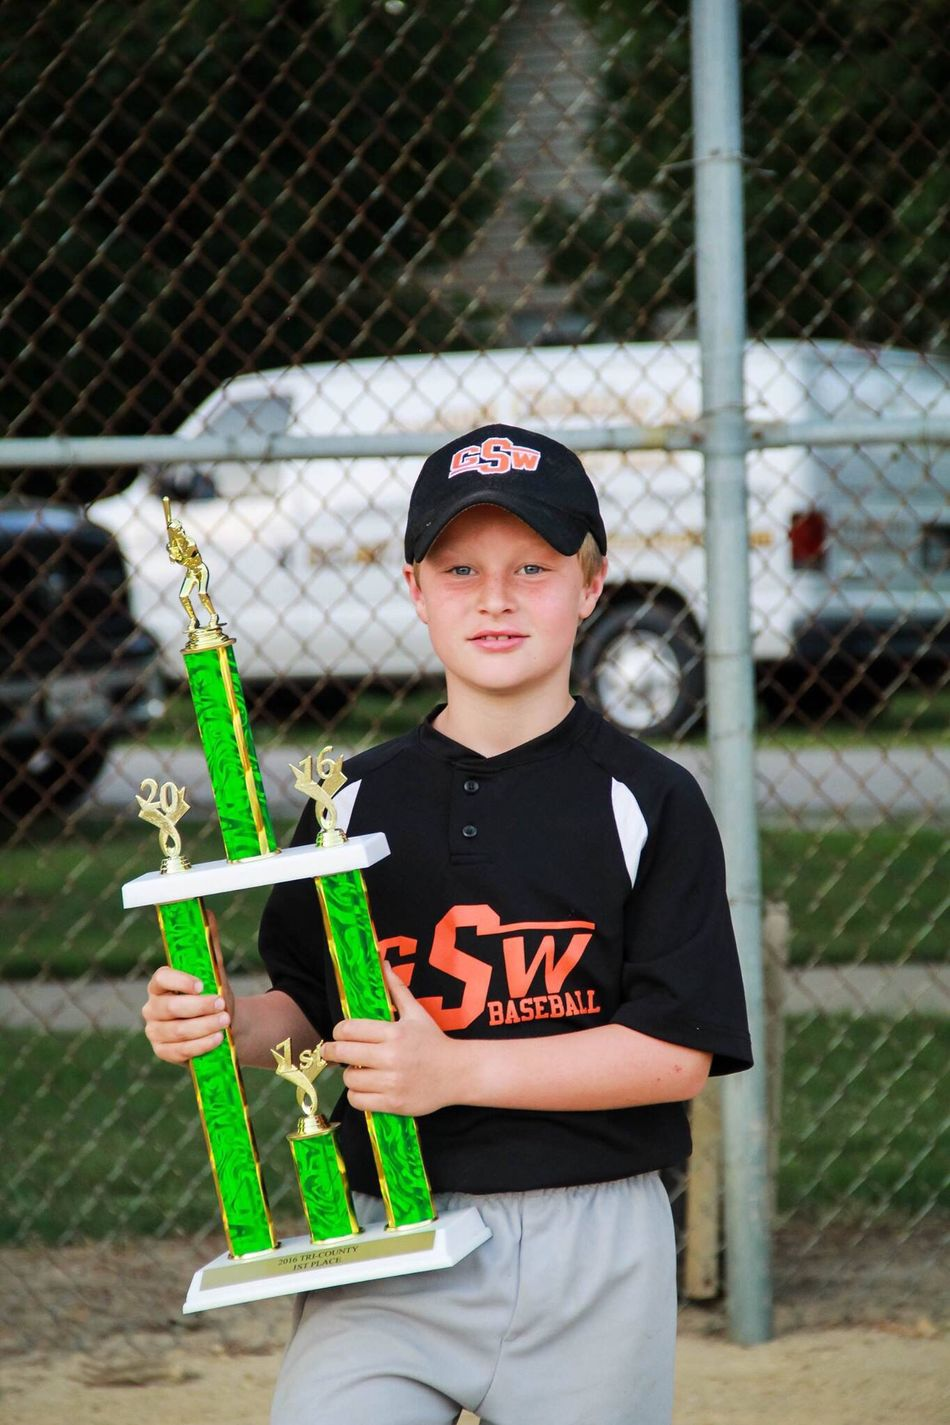 My son with the team trophy for 1st place in their league. So proud of these kiddos! Childhood Innocence Boy Baseball Trophy Portrait